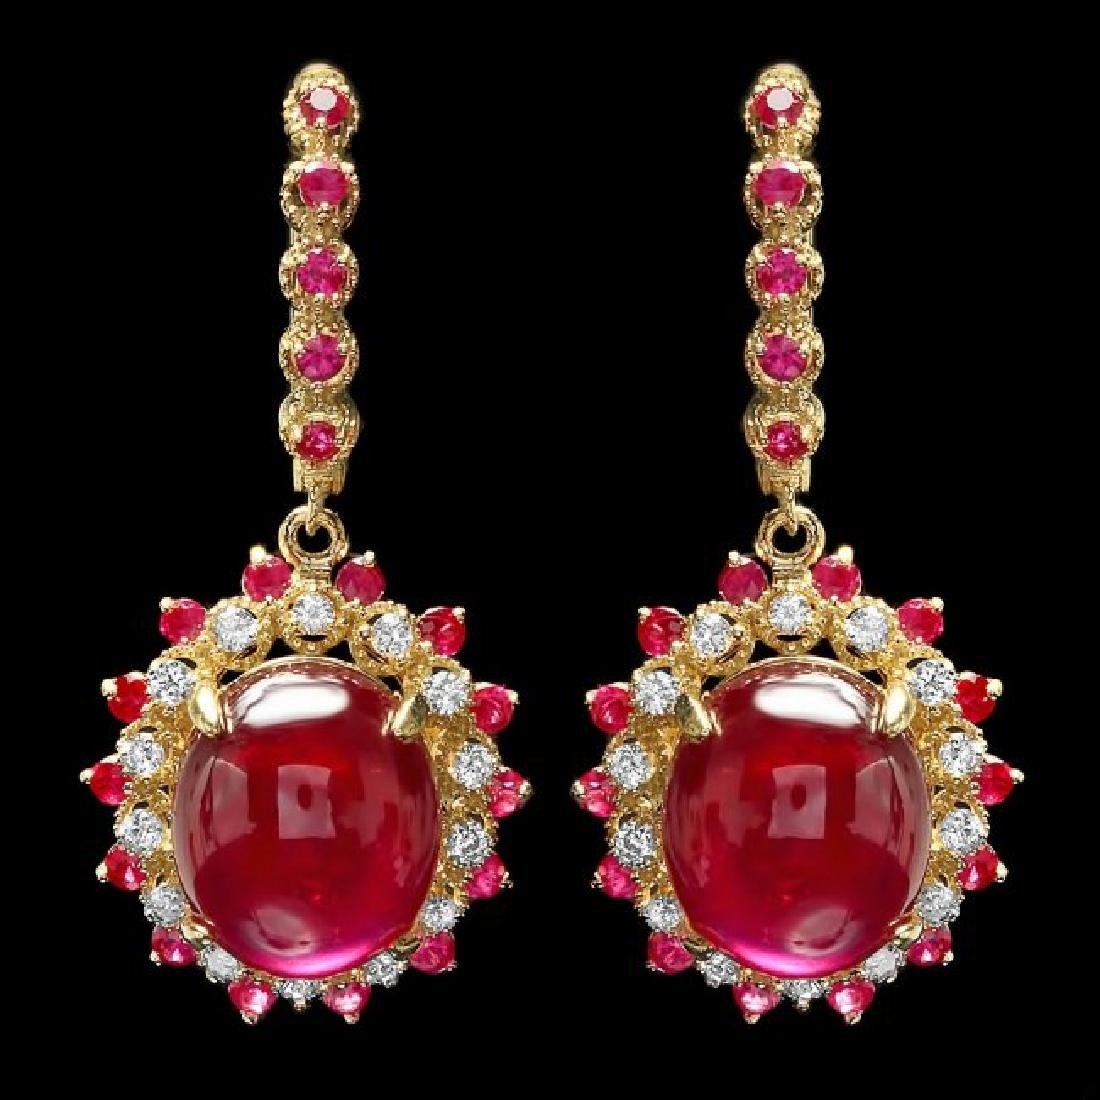 14k Gold 24.5ct Ruby 0.70ct Diamond Earrings